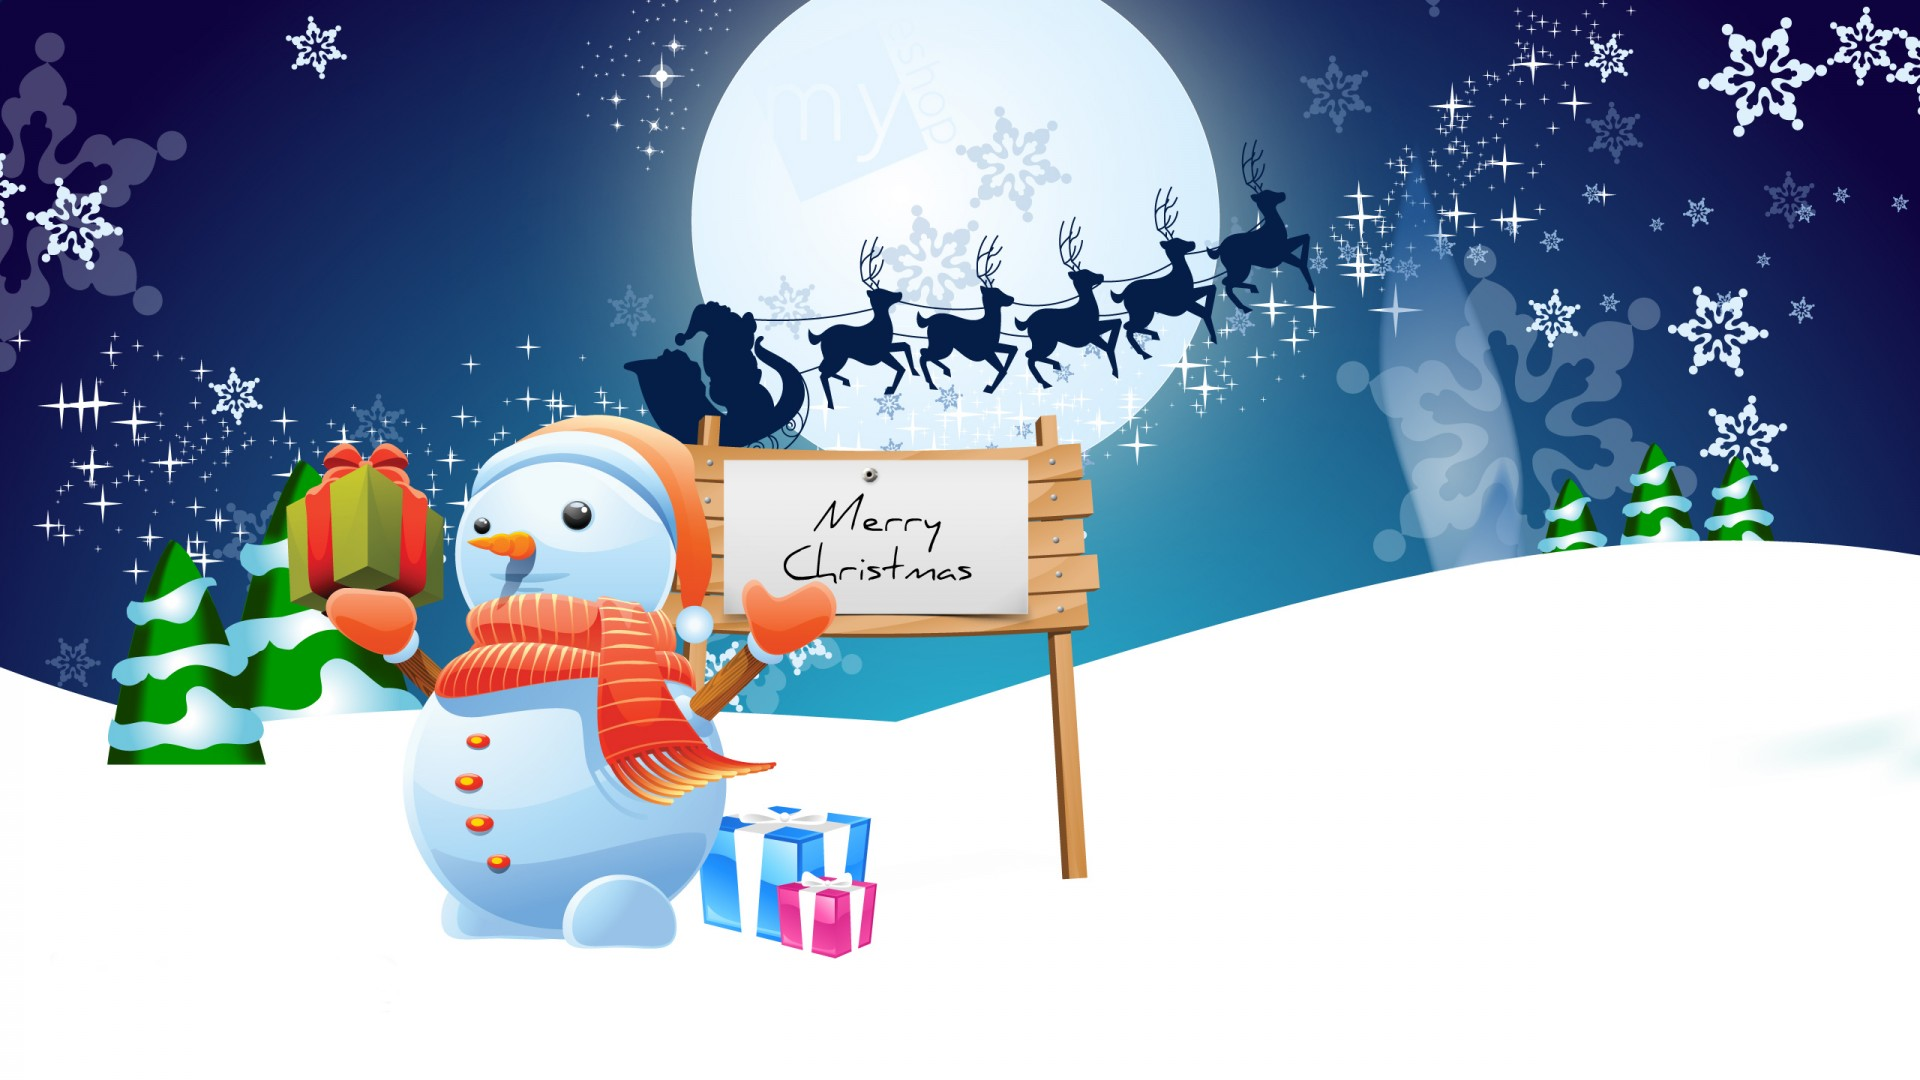 Xmas Wallpaper Iphone Snowman Merry Christmas Wallpapers Hd Wallpapers Id 10574